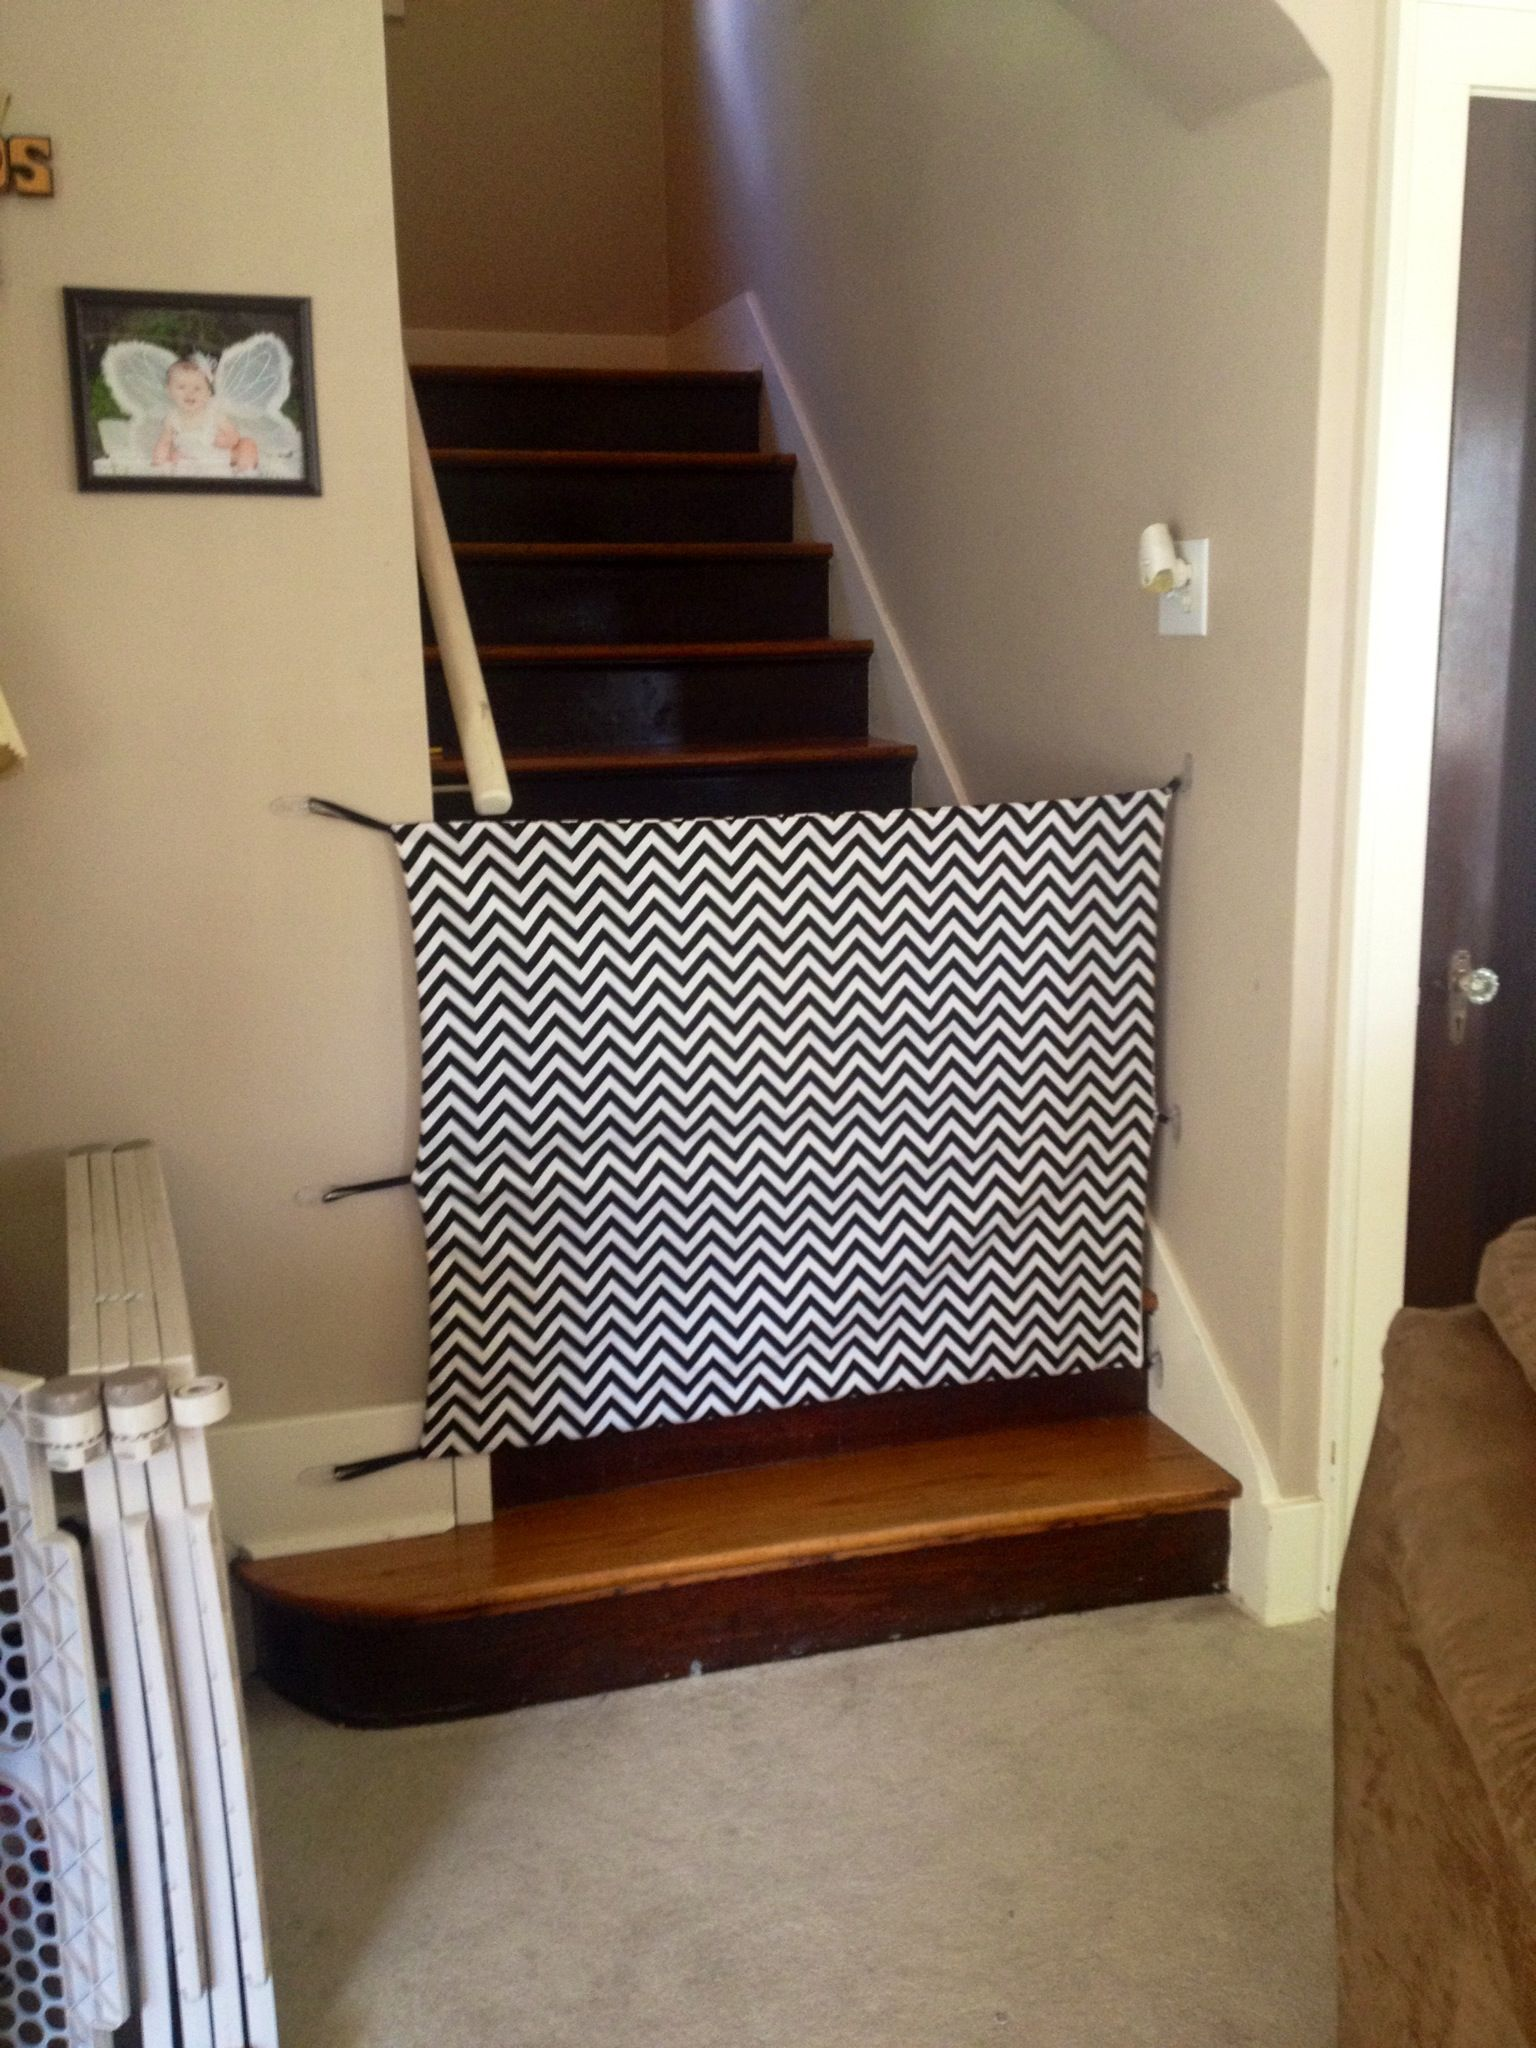 Breed Traphekje Diy Fabric Baby Gate Cost Around 30 Total And It Looks